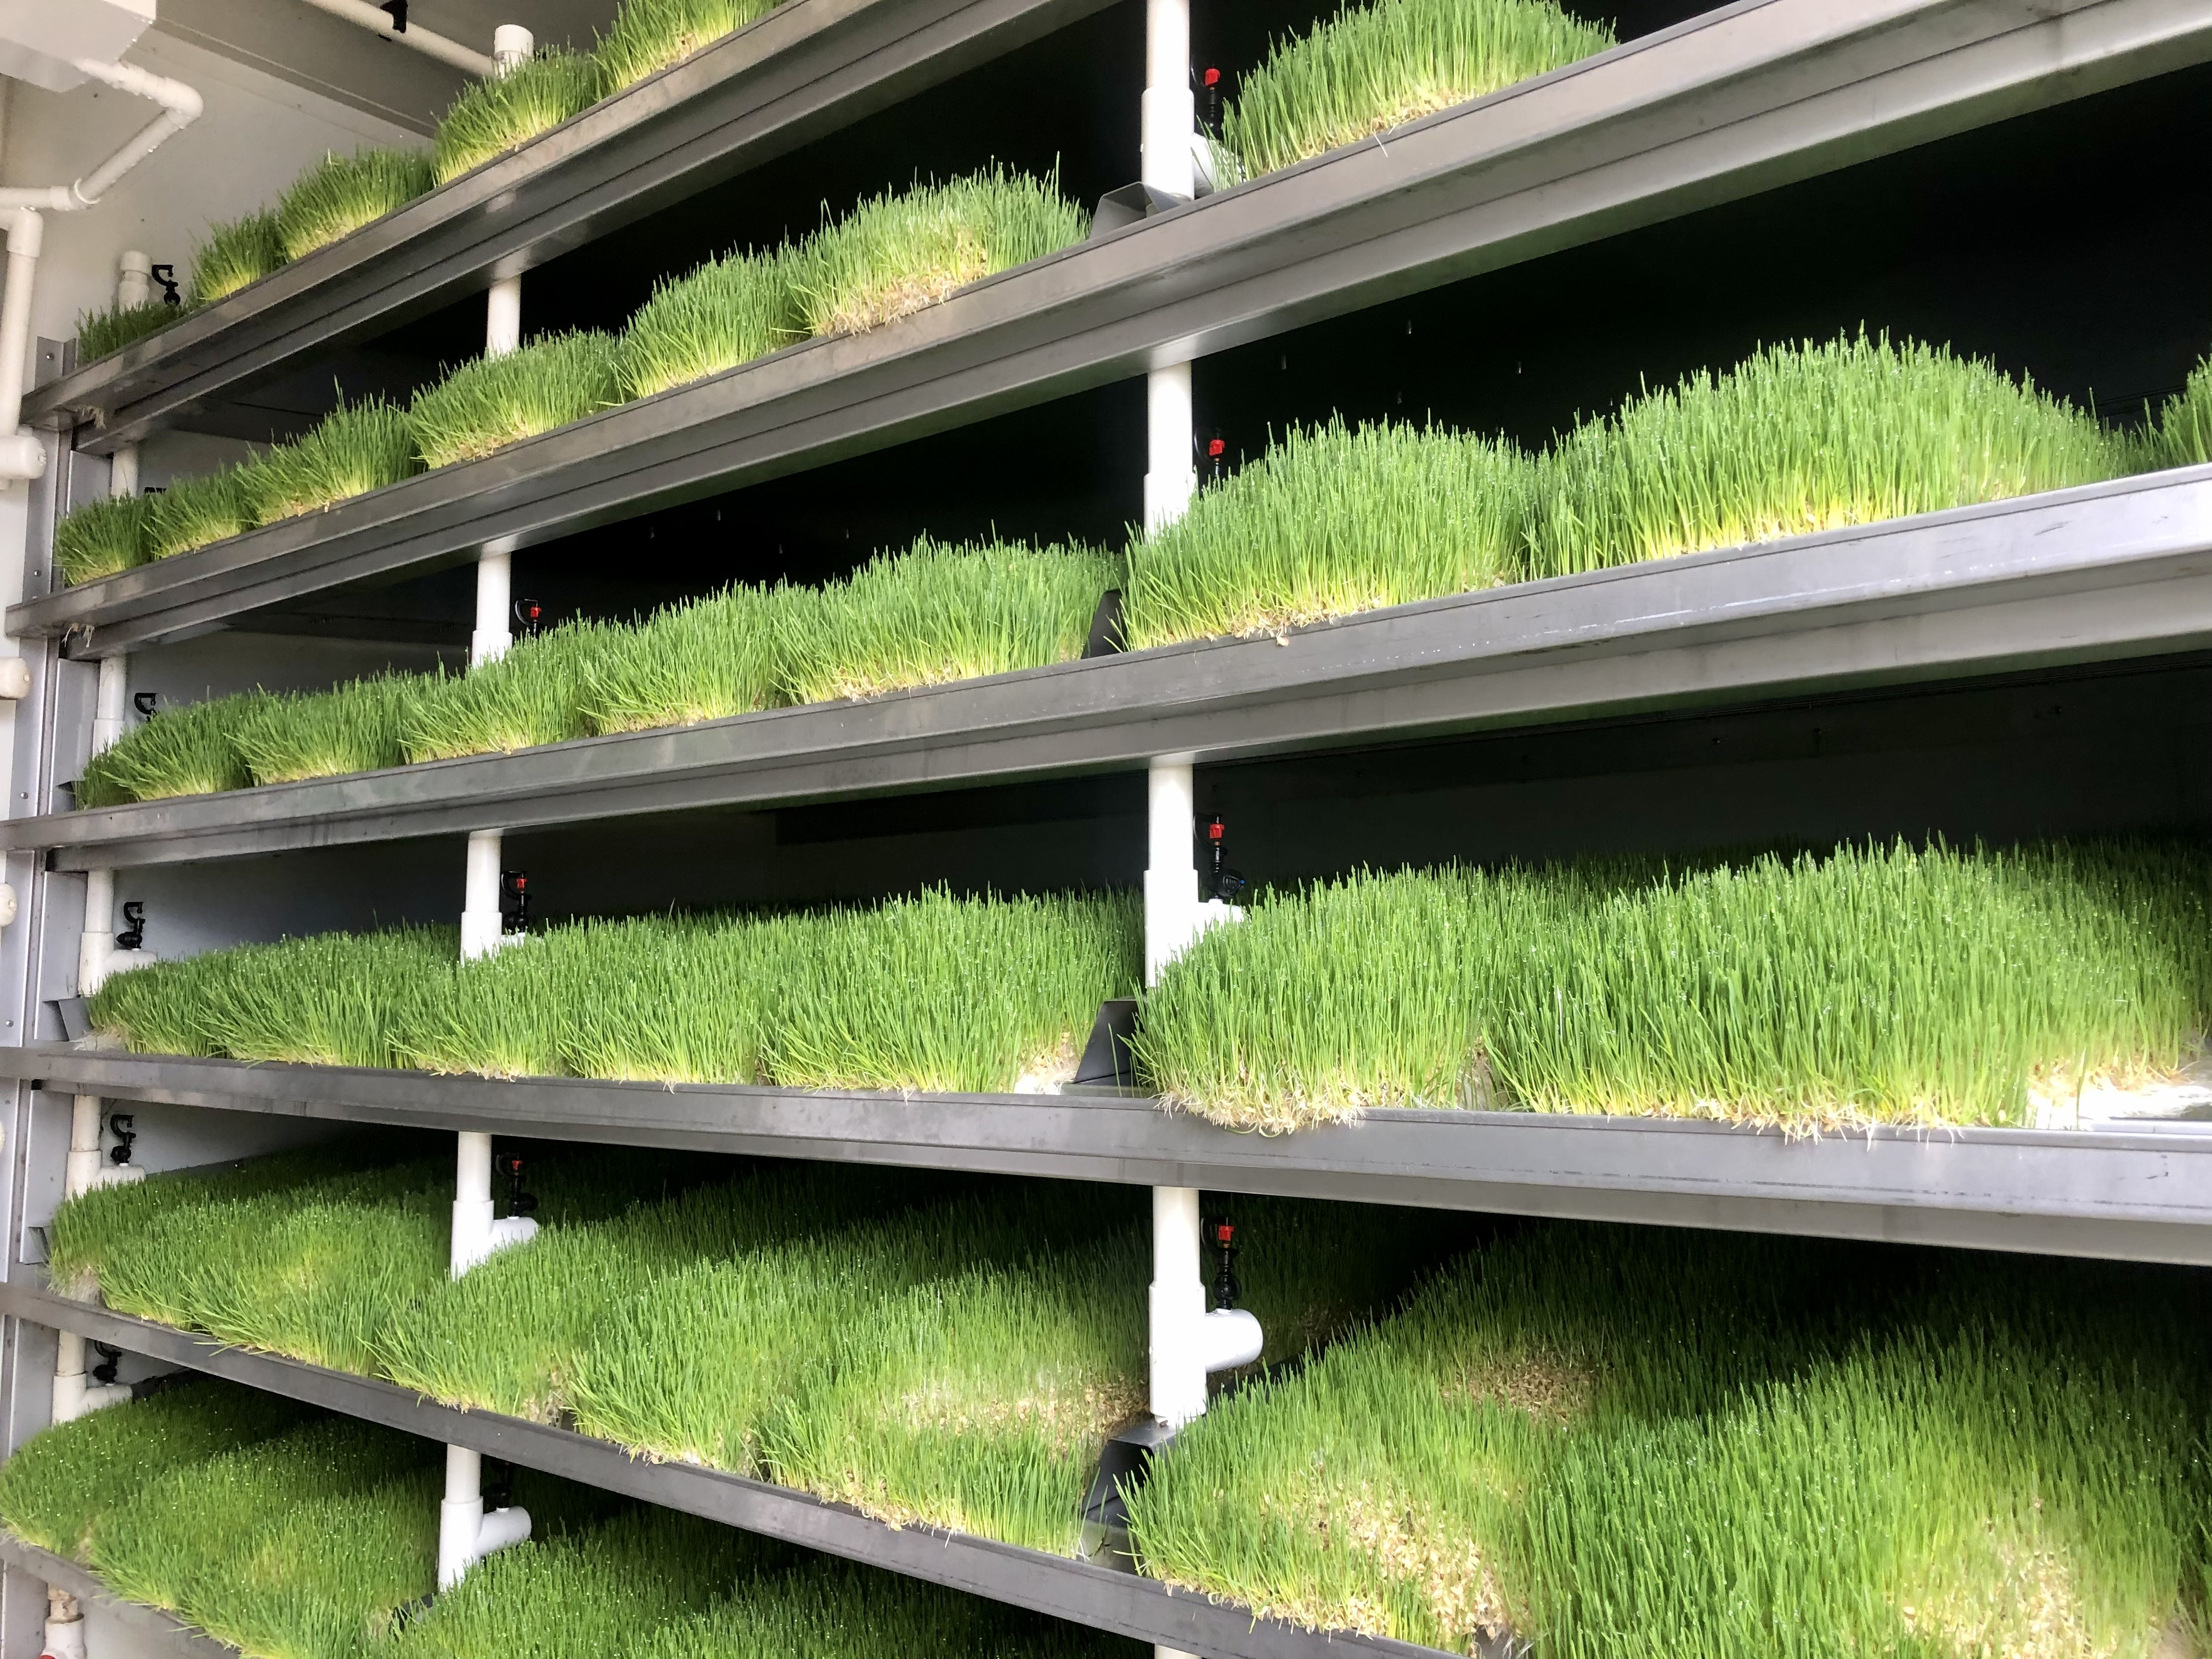 Trays of wheat grass on racks in a container.